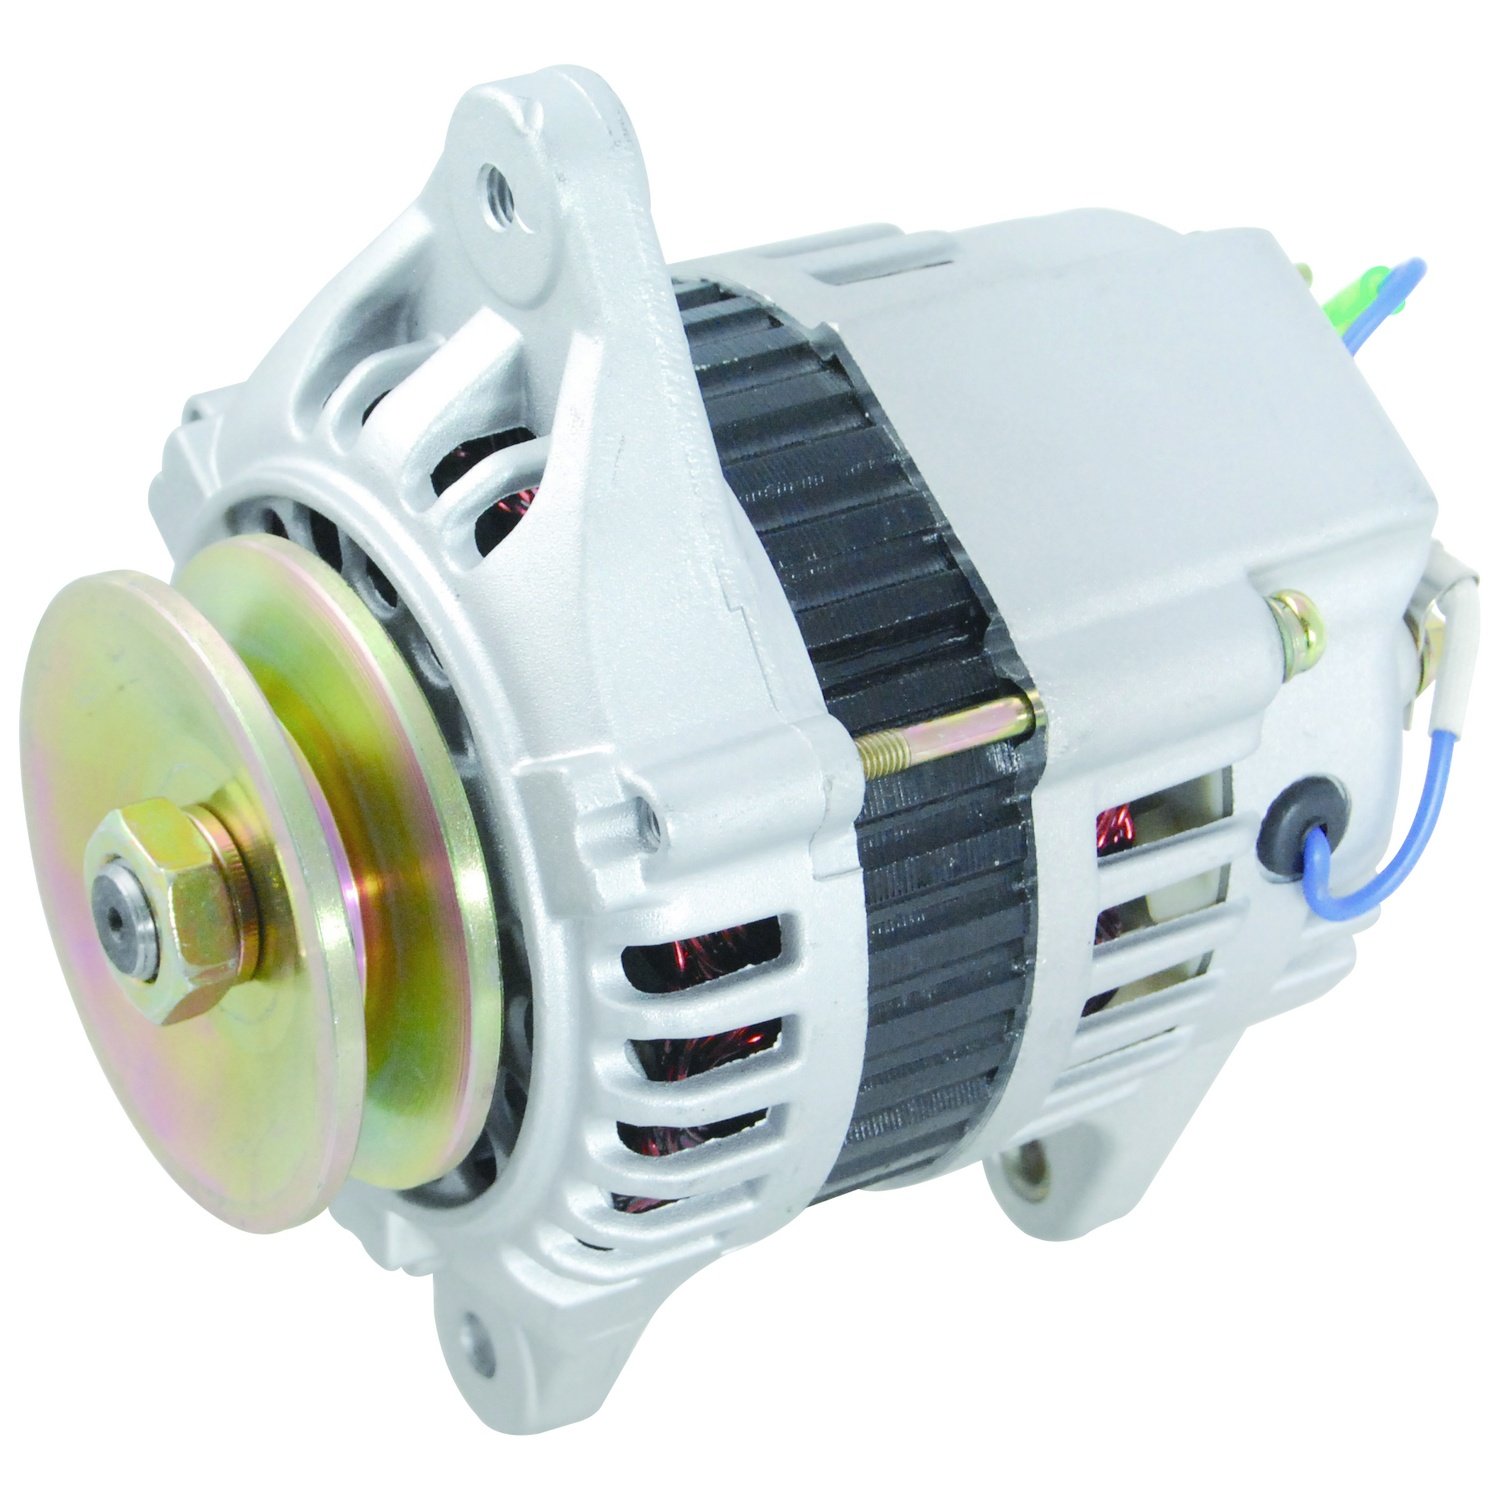 Alternator Hitachi IR/IF 50 Amp/12 Volt, CW, 1-Groove Pulley